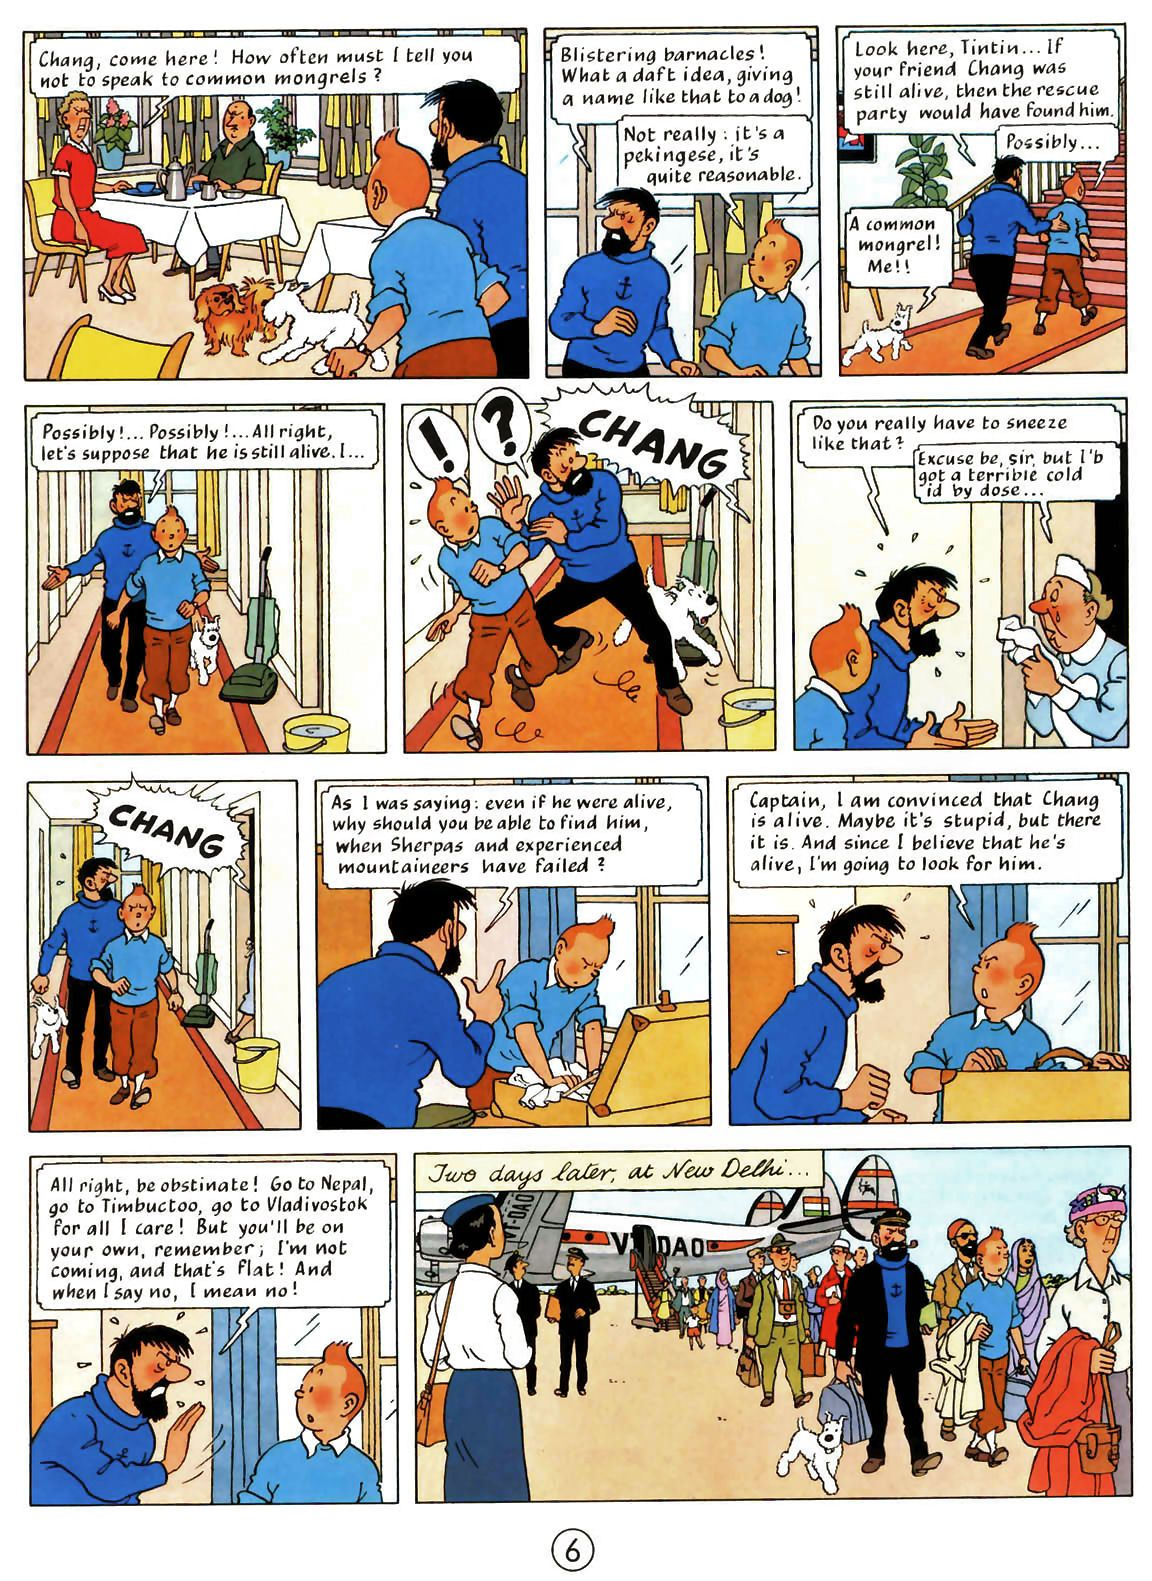 A Page Taken From Tintin In Tibet Tintin Argues With Captain As They Go On A Journey To Find Chang Tintin Comics Tibet